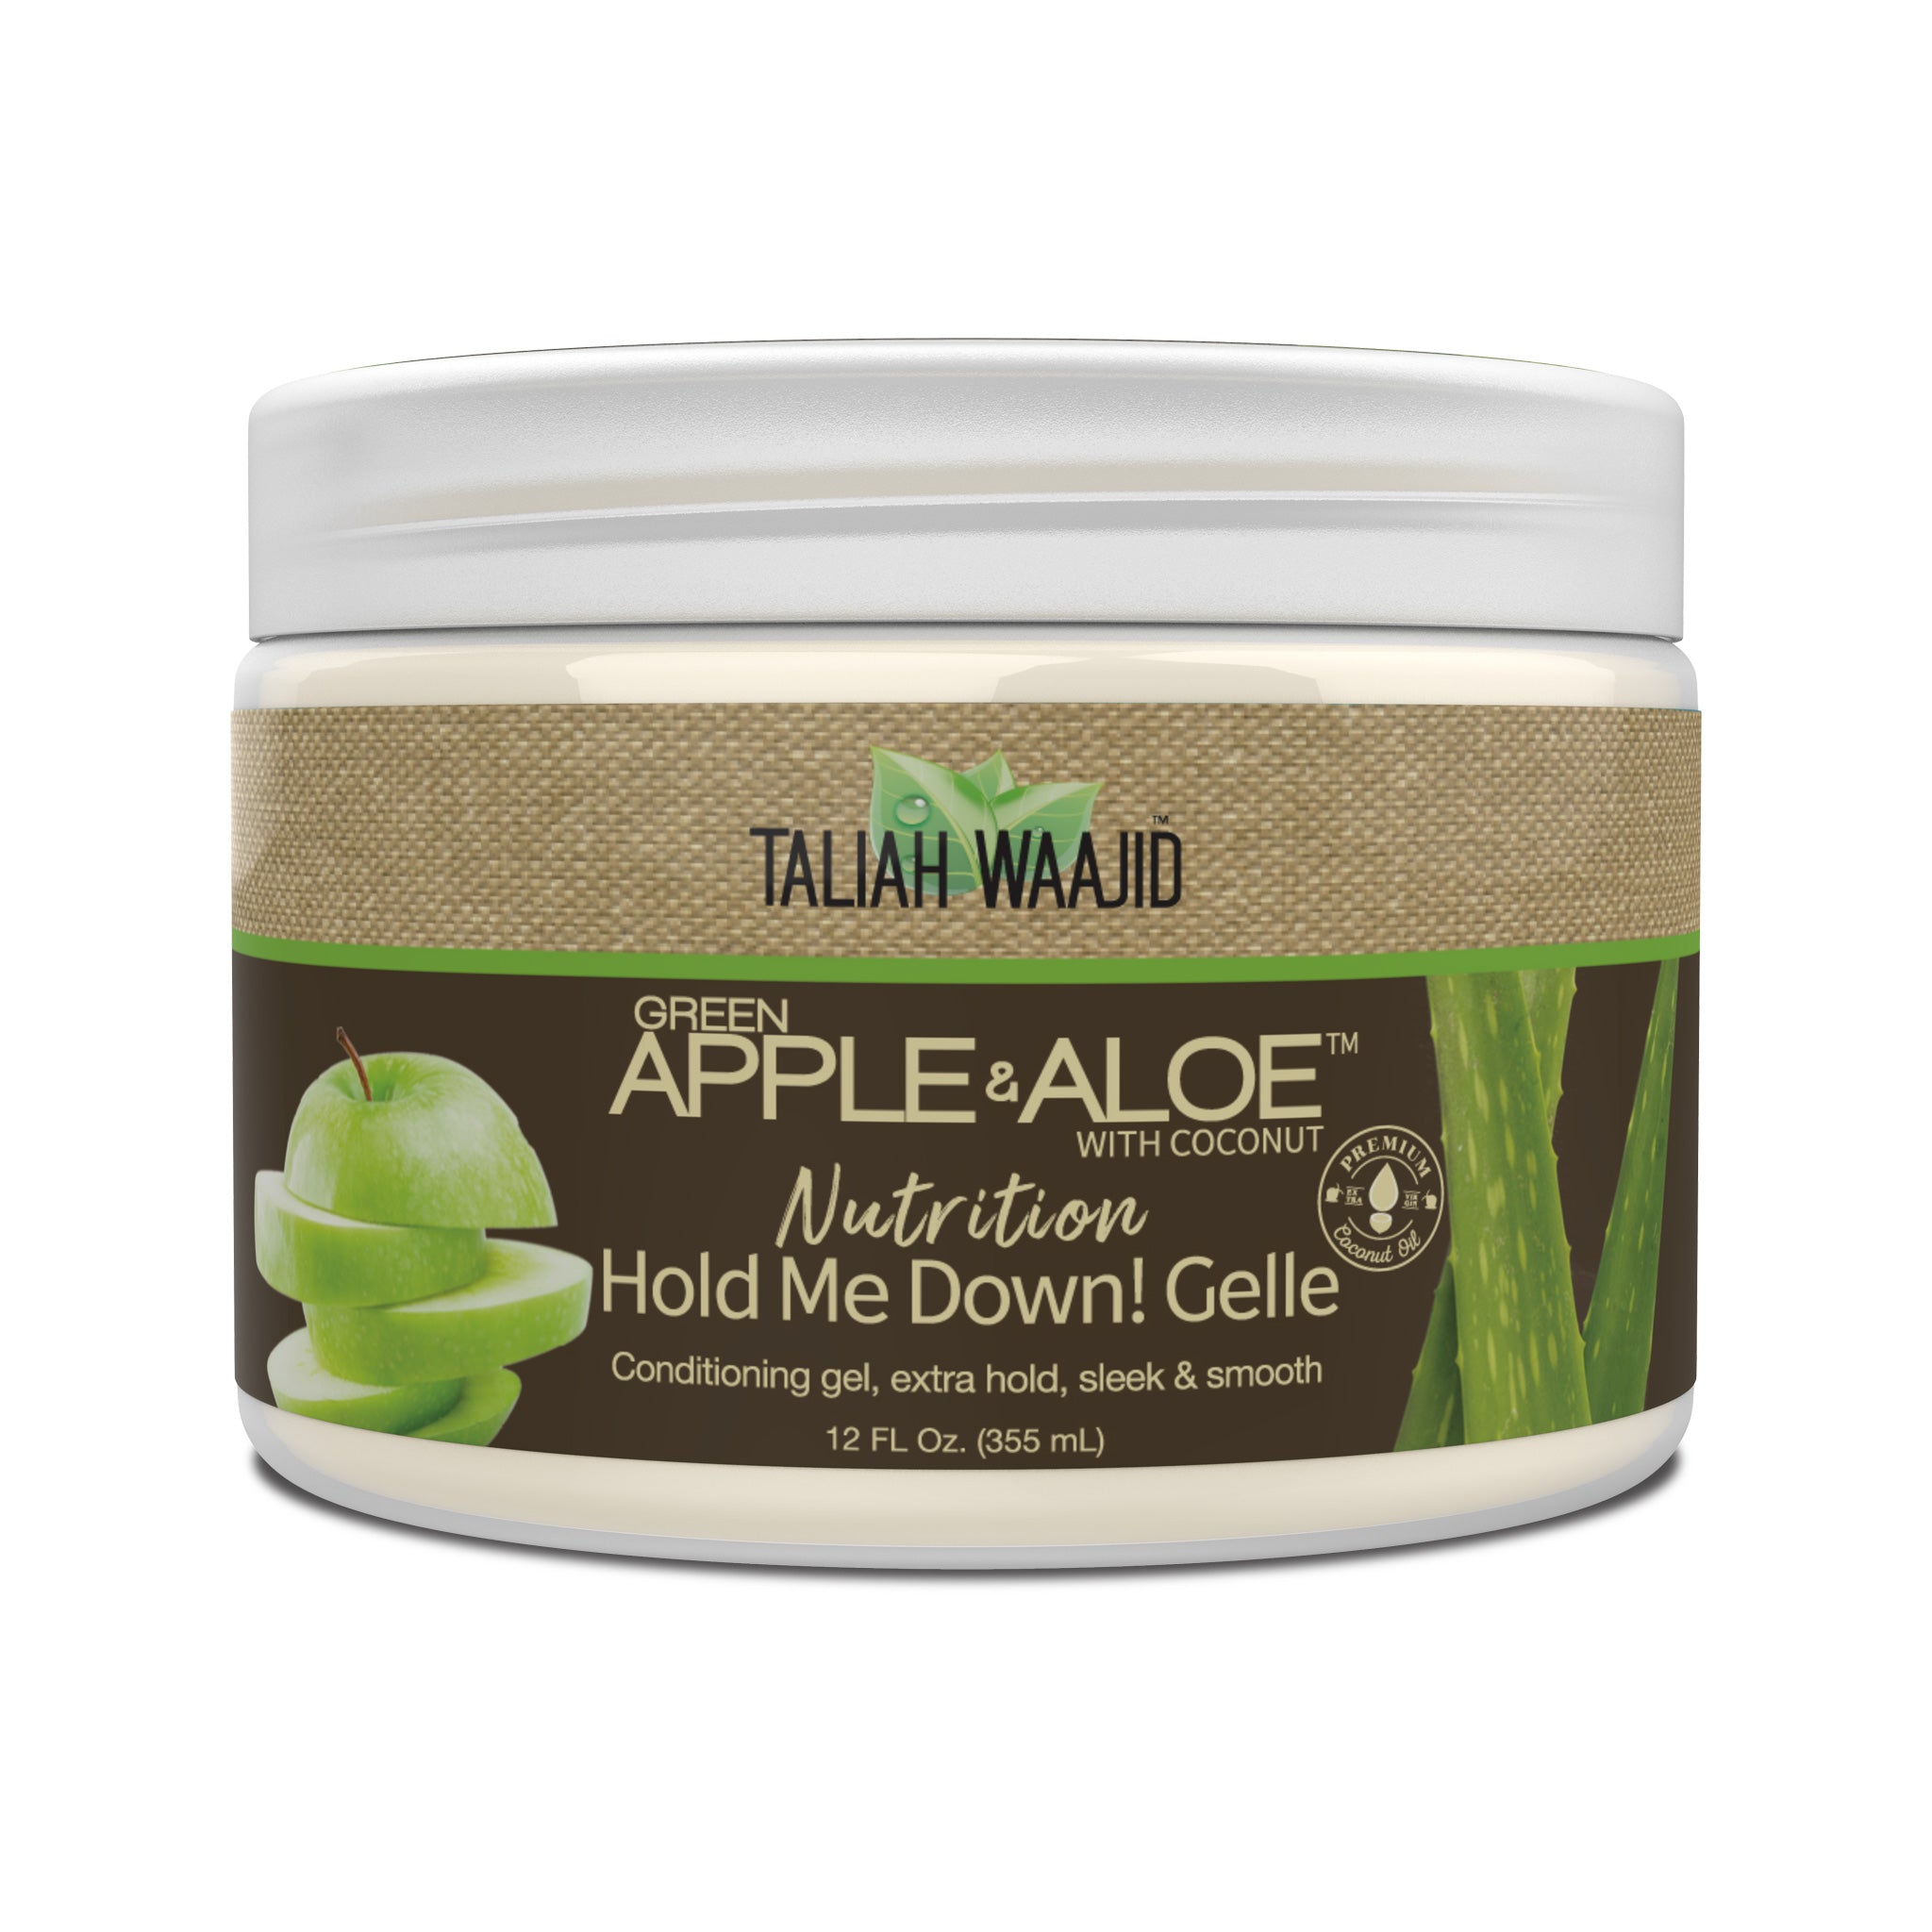 Green Apple & Aloe Nutrition Hold Me Down! Gelle 12oz